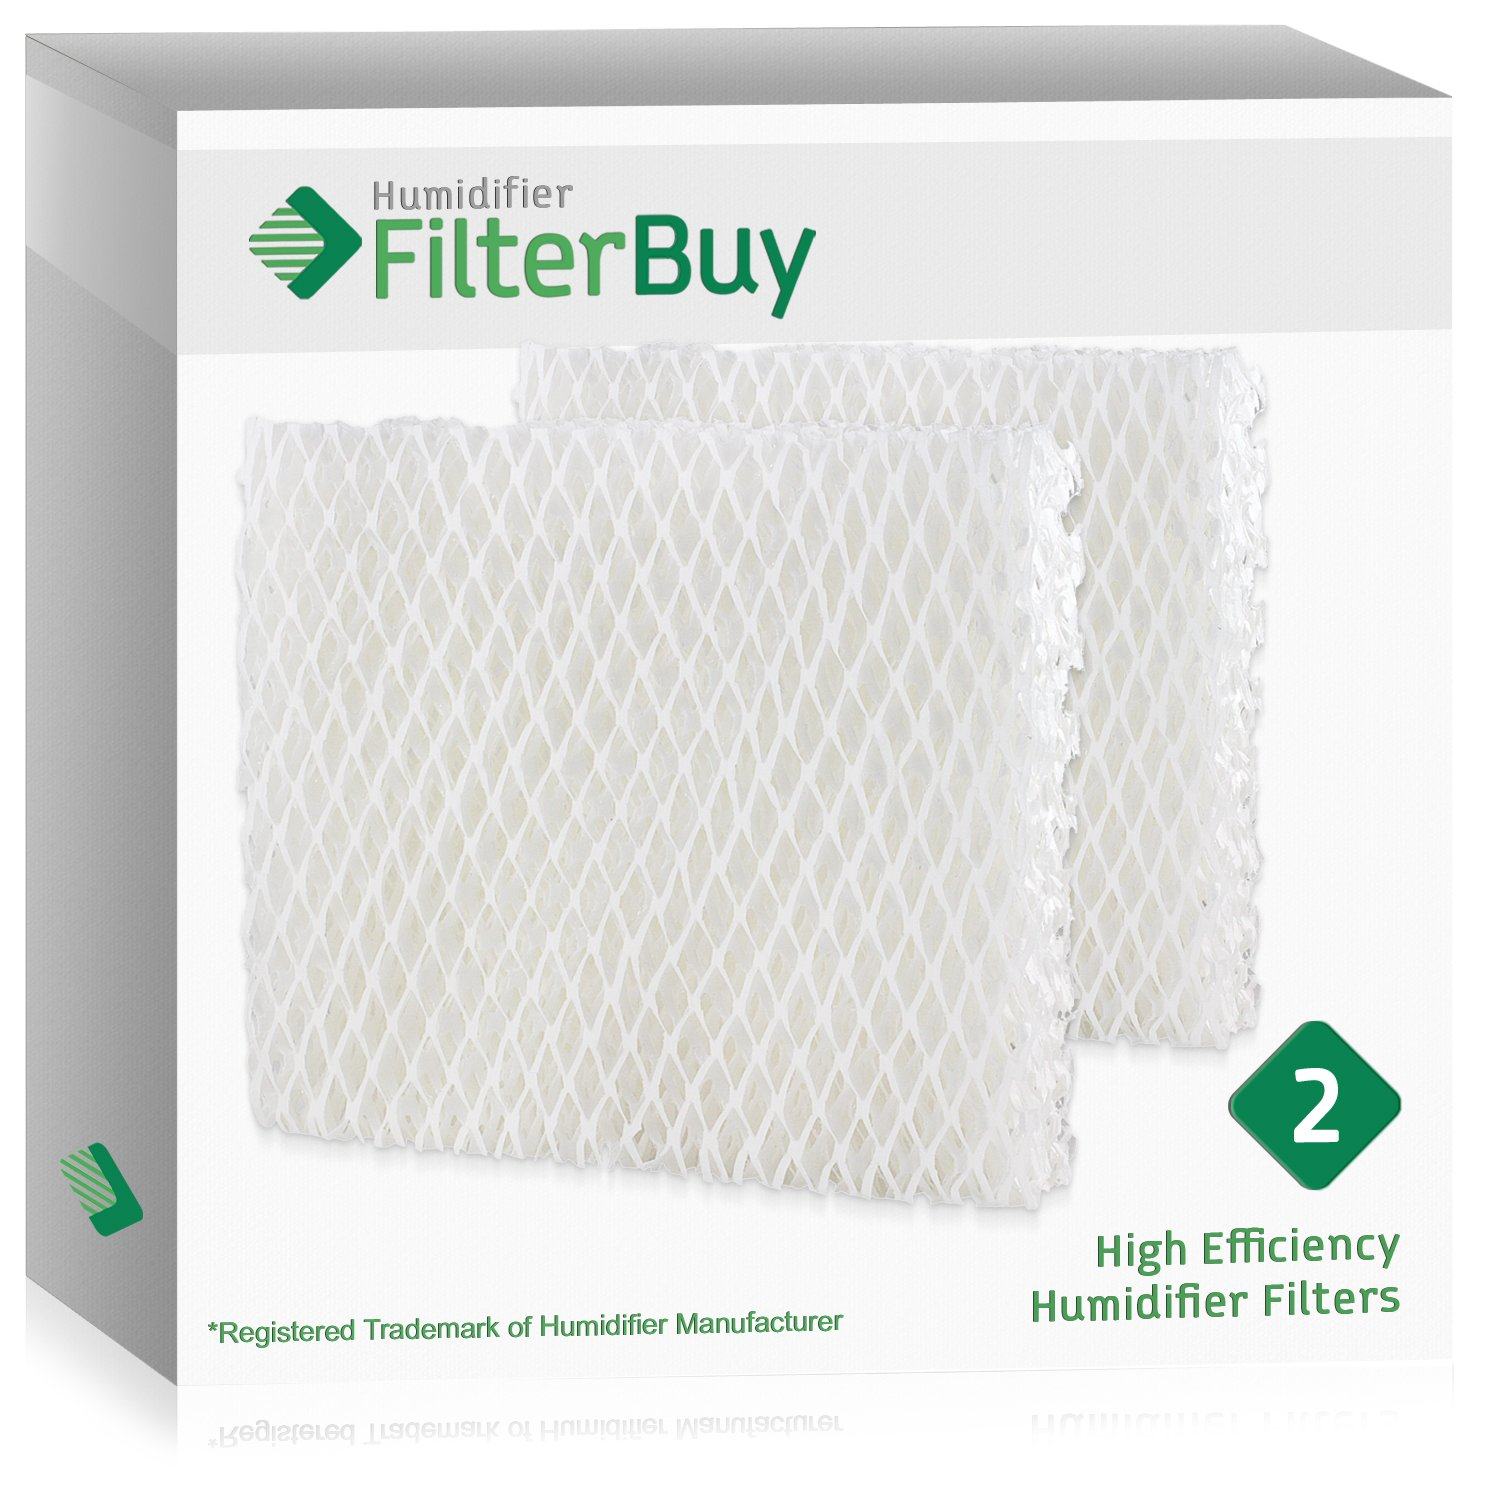 FilterBuy Replacement Humidifier Filters Compatible with Holmes HWF55, Vornado 221, 232, 421, 432, HU1-0021. Pack of 2.